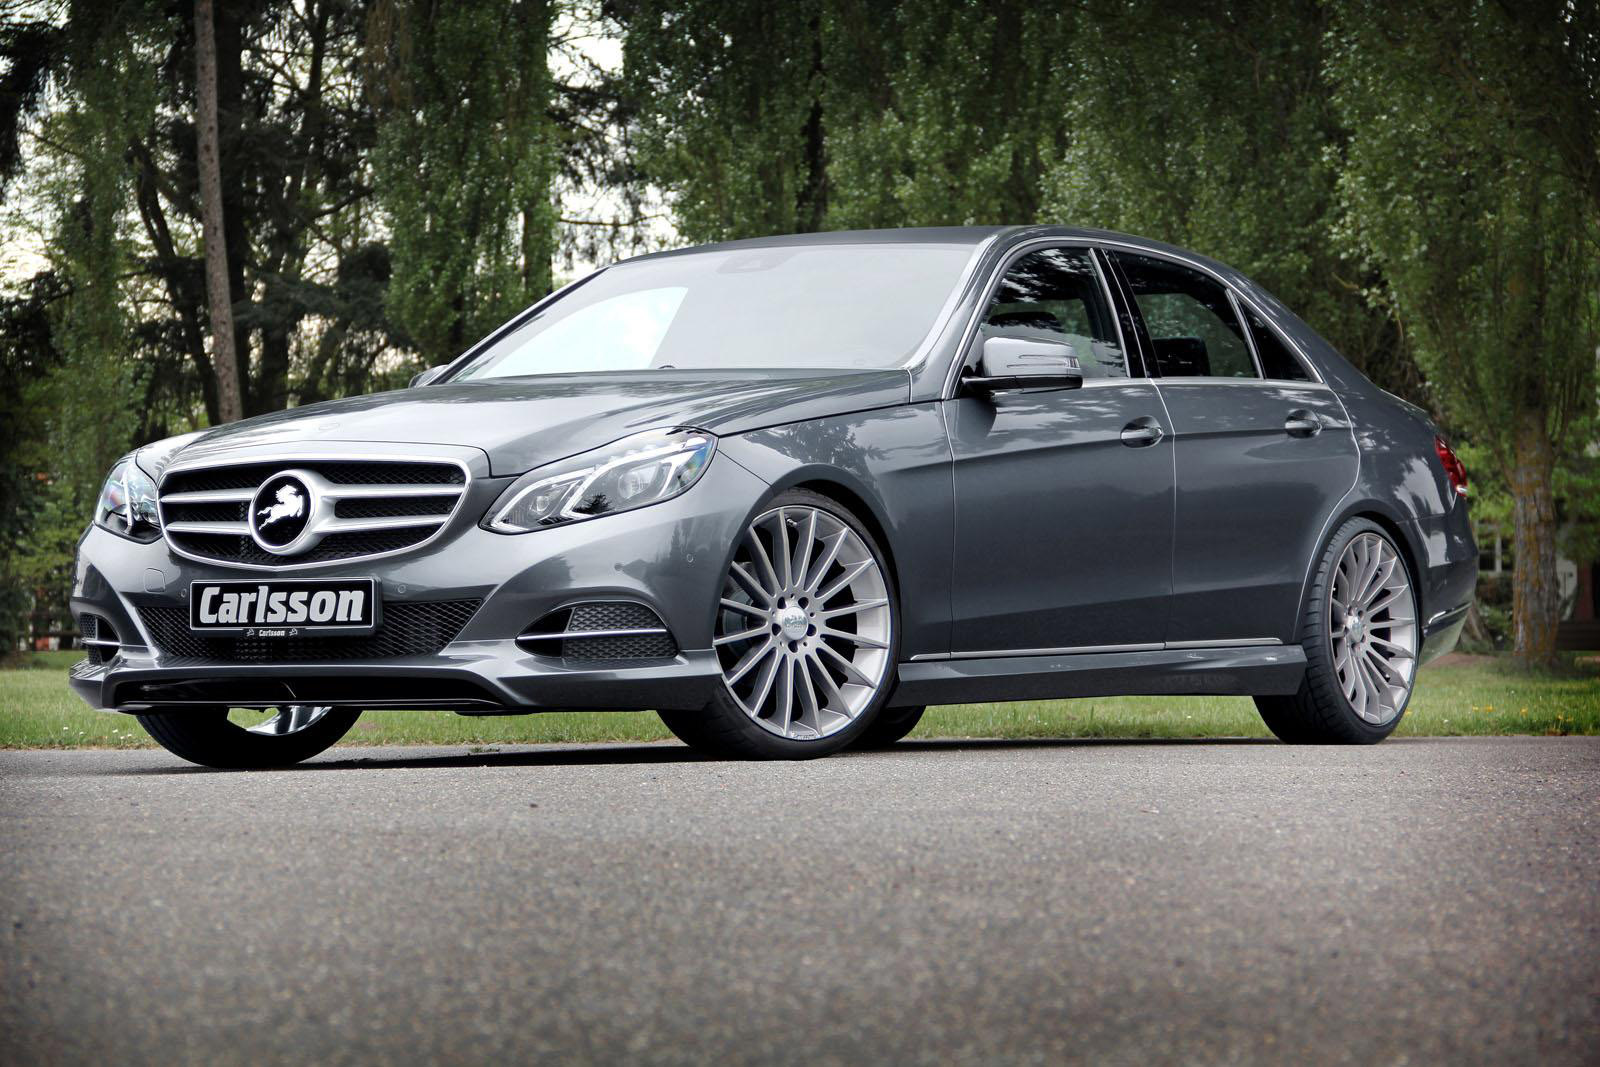 Carlsson 2014 mercedes benz e class w212 for Mercedes benz 2014